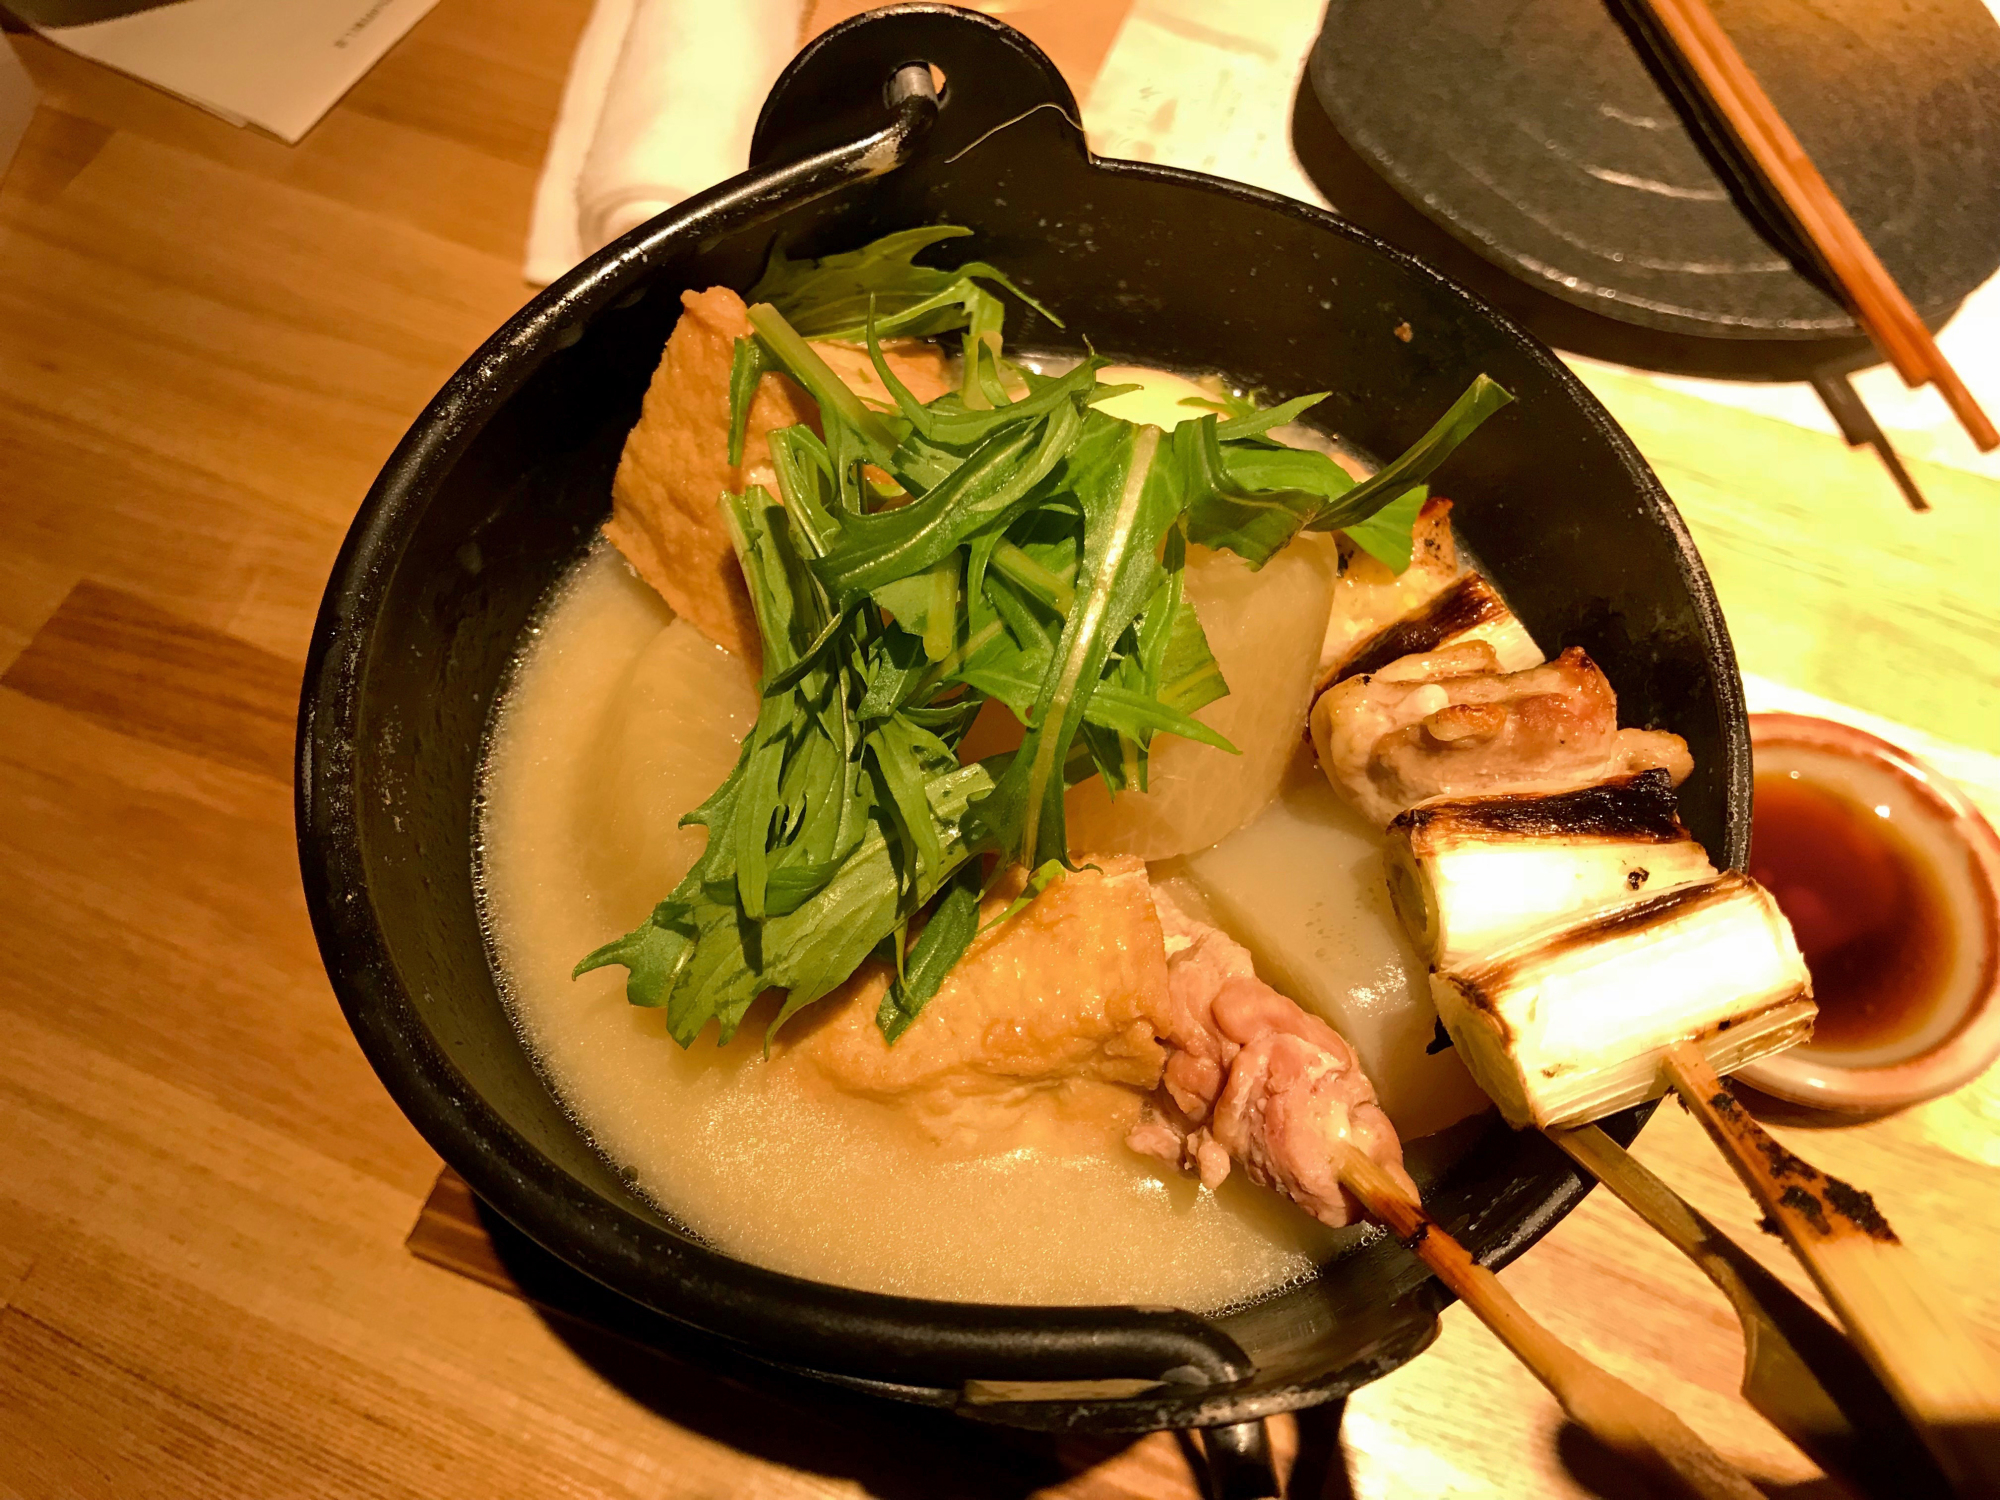 Beyond yakitori: Torisee Takoyakushi's chicken and white miso oden is worthy of exploration. | J. J. O'DONOGHUE